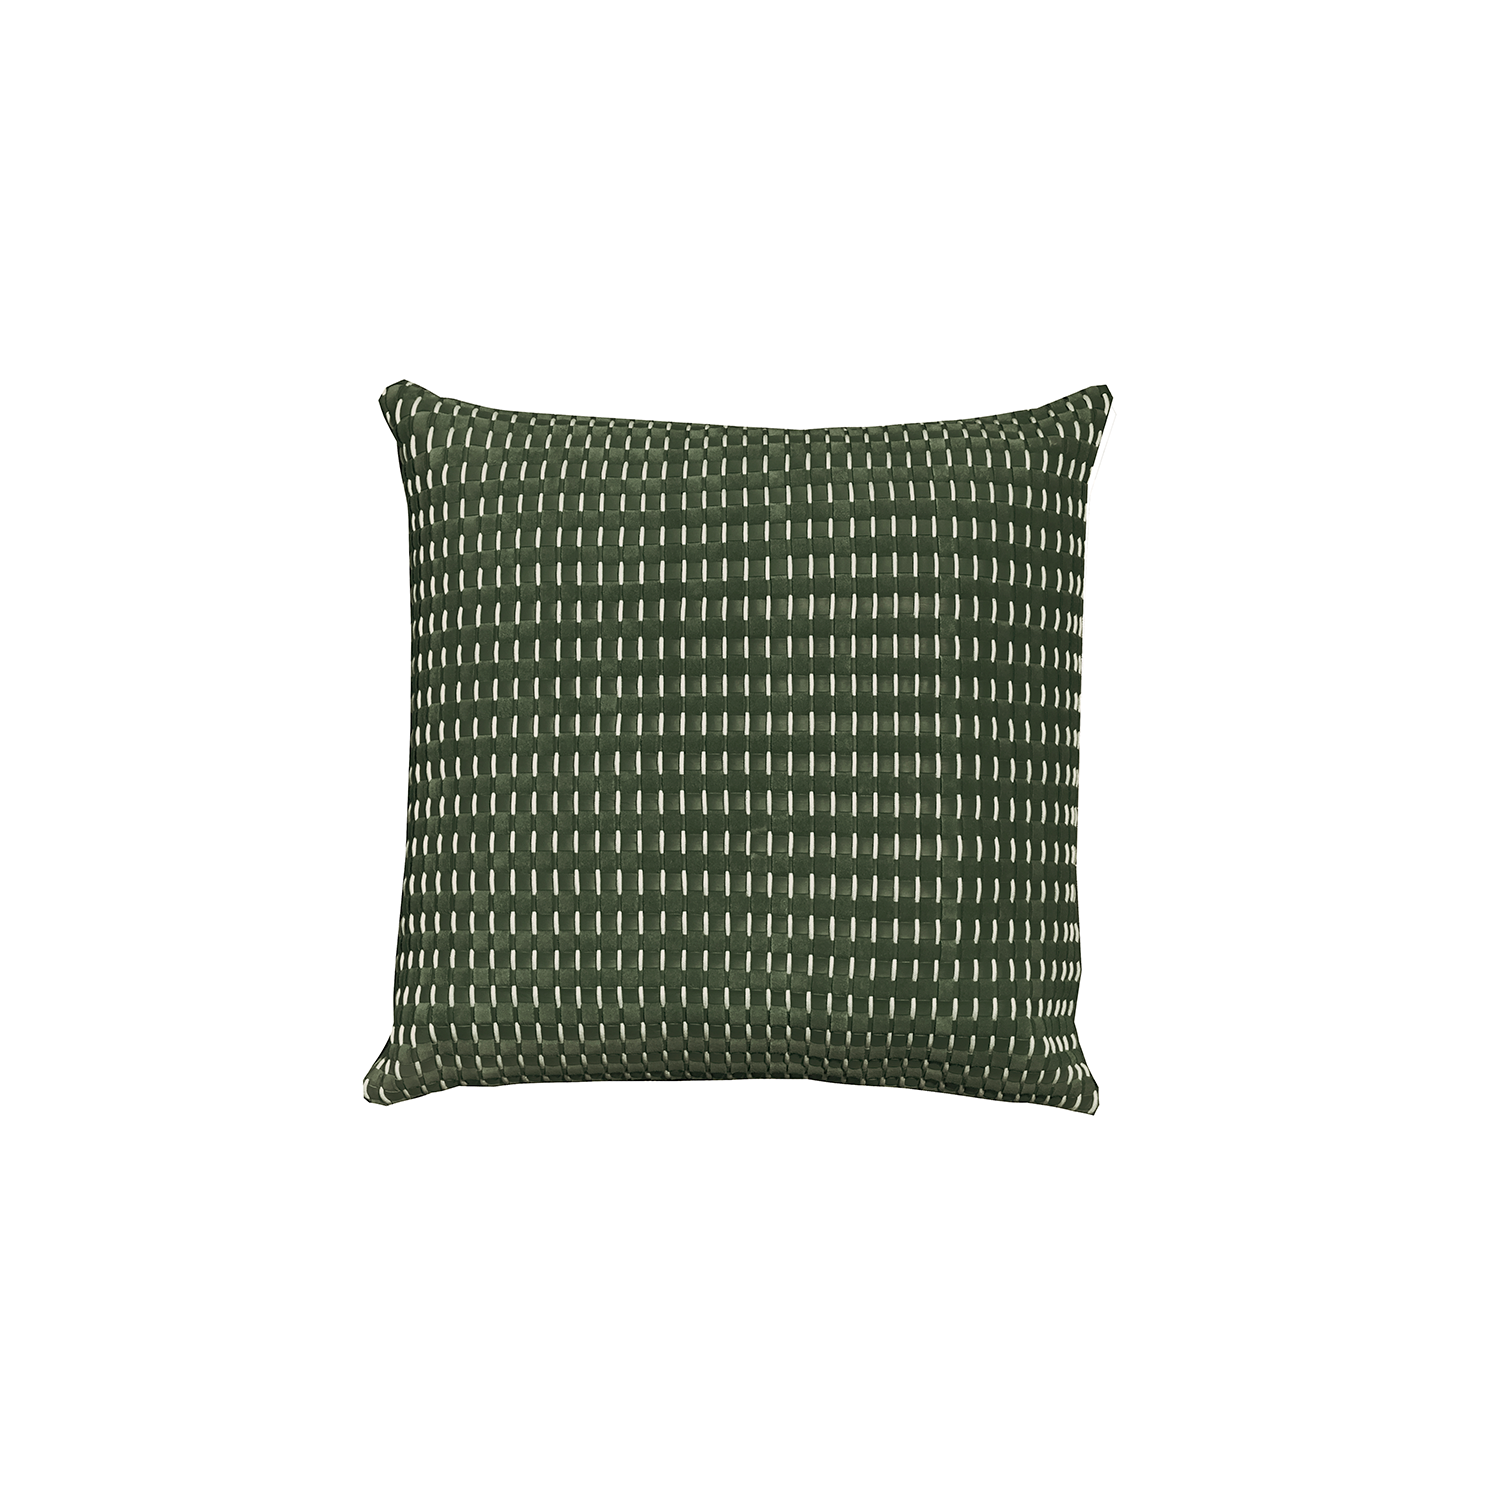 Camboja Woven Leather Cushion Square - The Camboja Woven Leather Cushion is designed to complement an ambient with a natural and sophisticated feeling. This cushion style is available in pleated leather or pleated suede leather. Elisa Atheniense woven handmade leather cushions are specially manufactured in Brazil using an exclusive treated leather that brings the soft feel touch to every single piece.   The front panel is handwoven in leather and the back panel is 100% Pes, made in Brazil.  The inner cushion is available in Hollow Fibre and European Duck Feathers, made in the UK.  Please enquire for more information and see colour chart for reference.  | Matter of Stuff